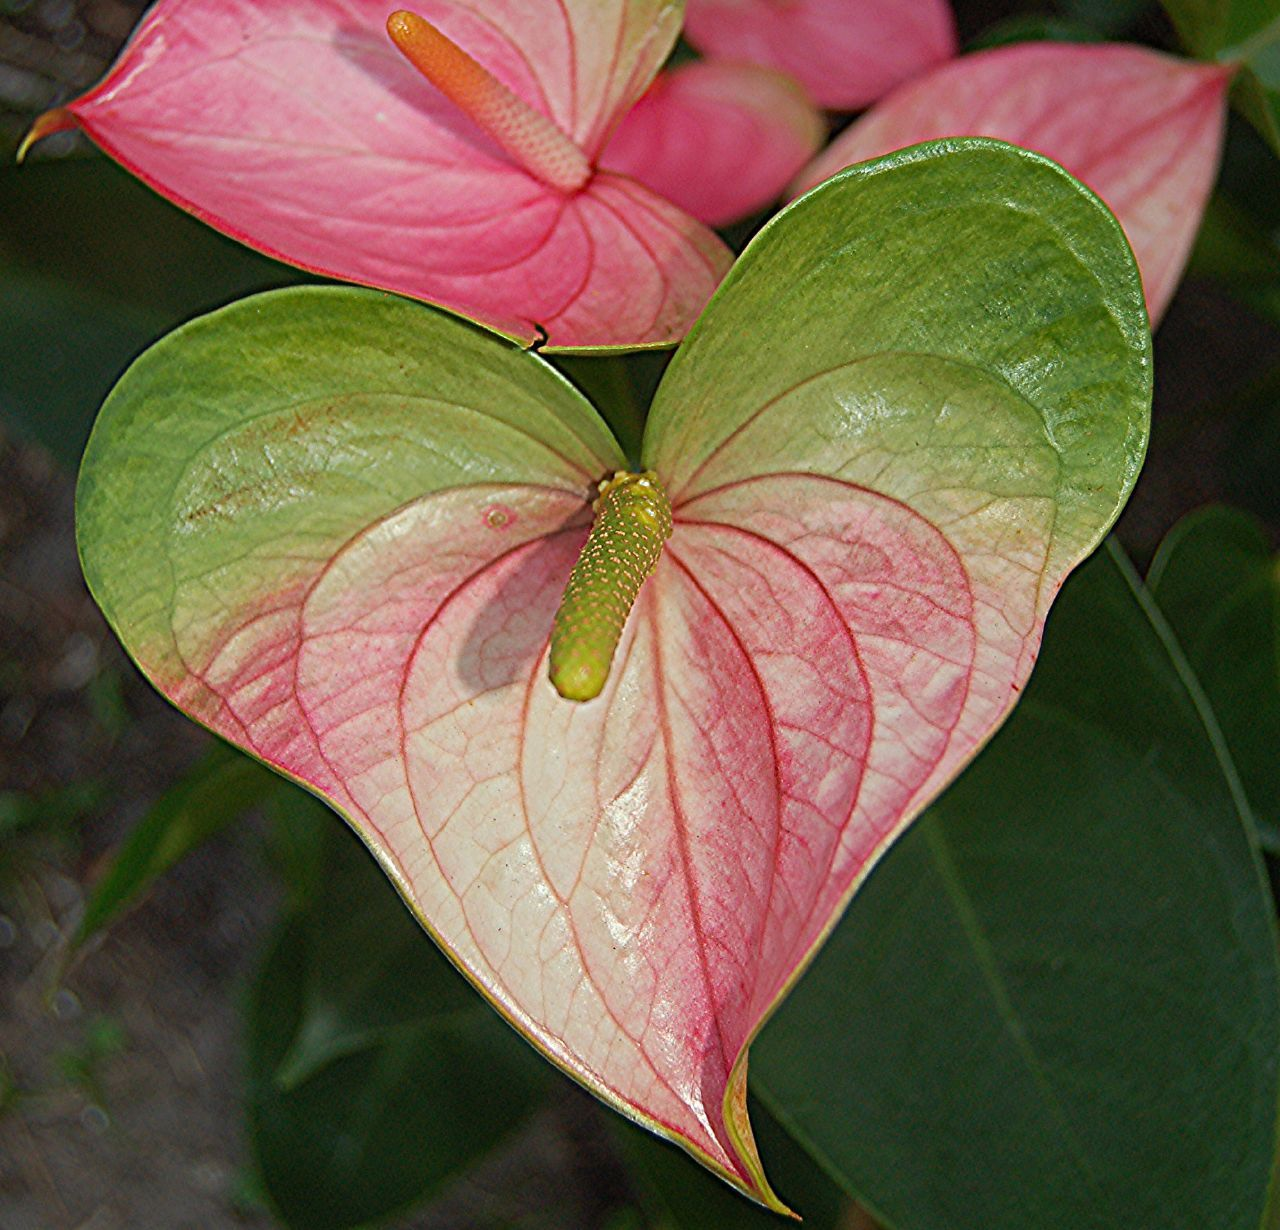 Heart Shaped Pink And Green Anthurium I Really Want Some For The Atrium Goruntuler Ile Doga Dogal Bitki